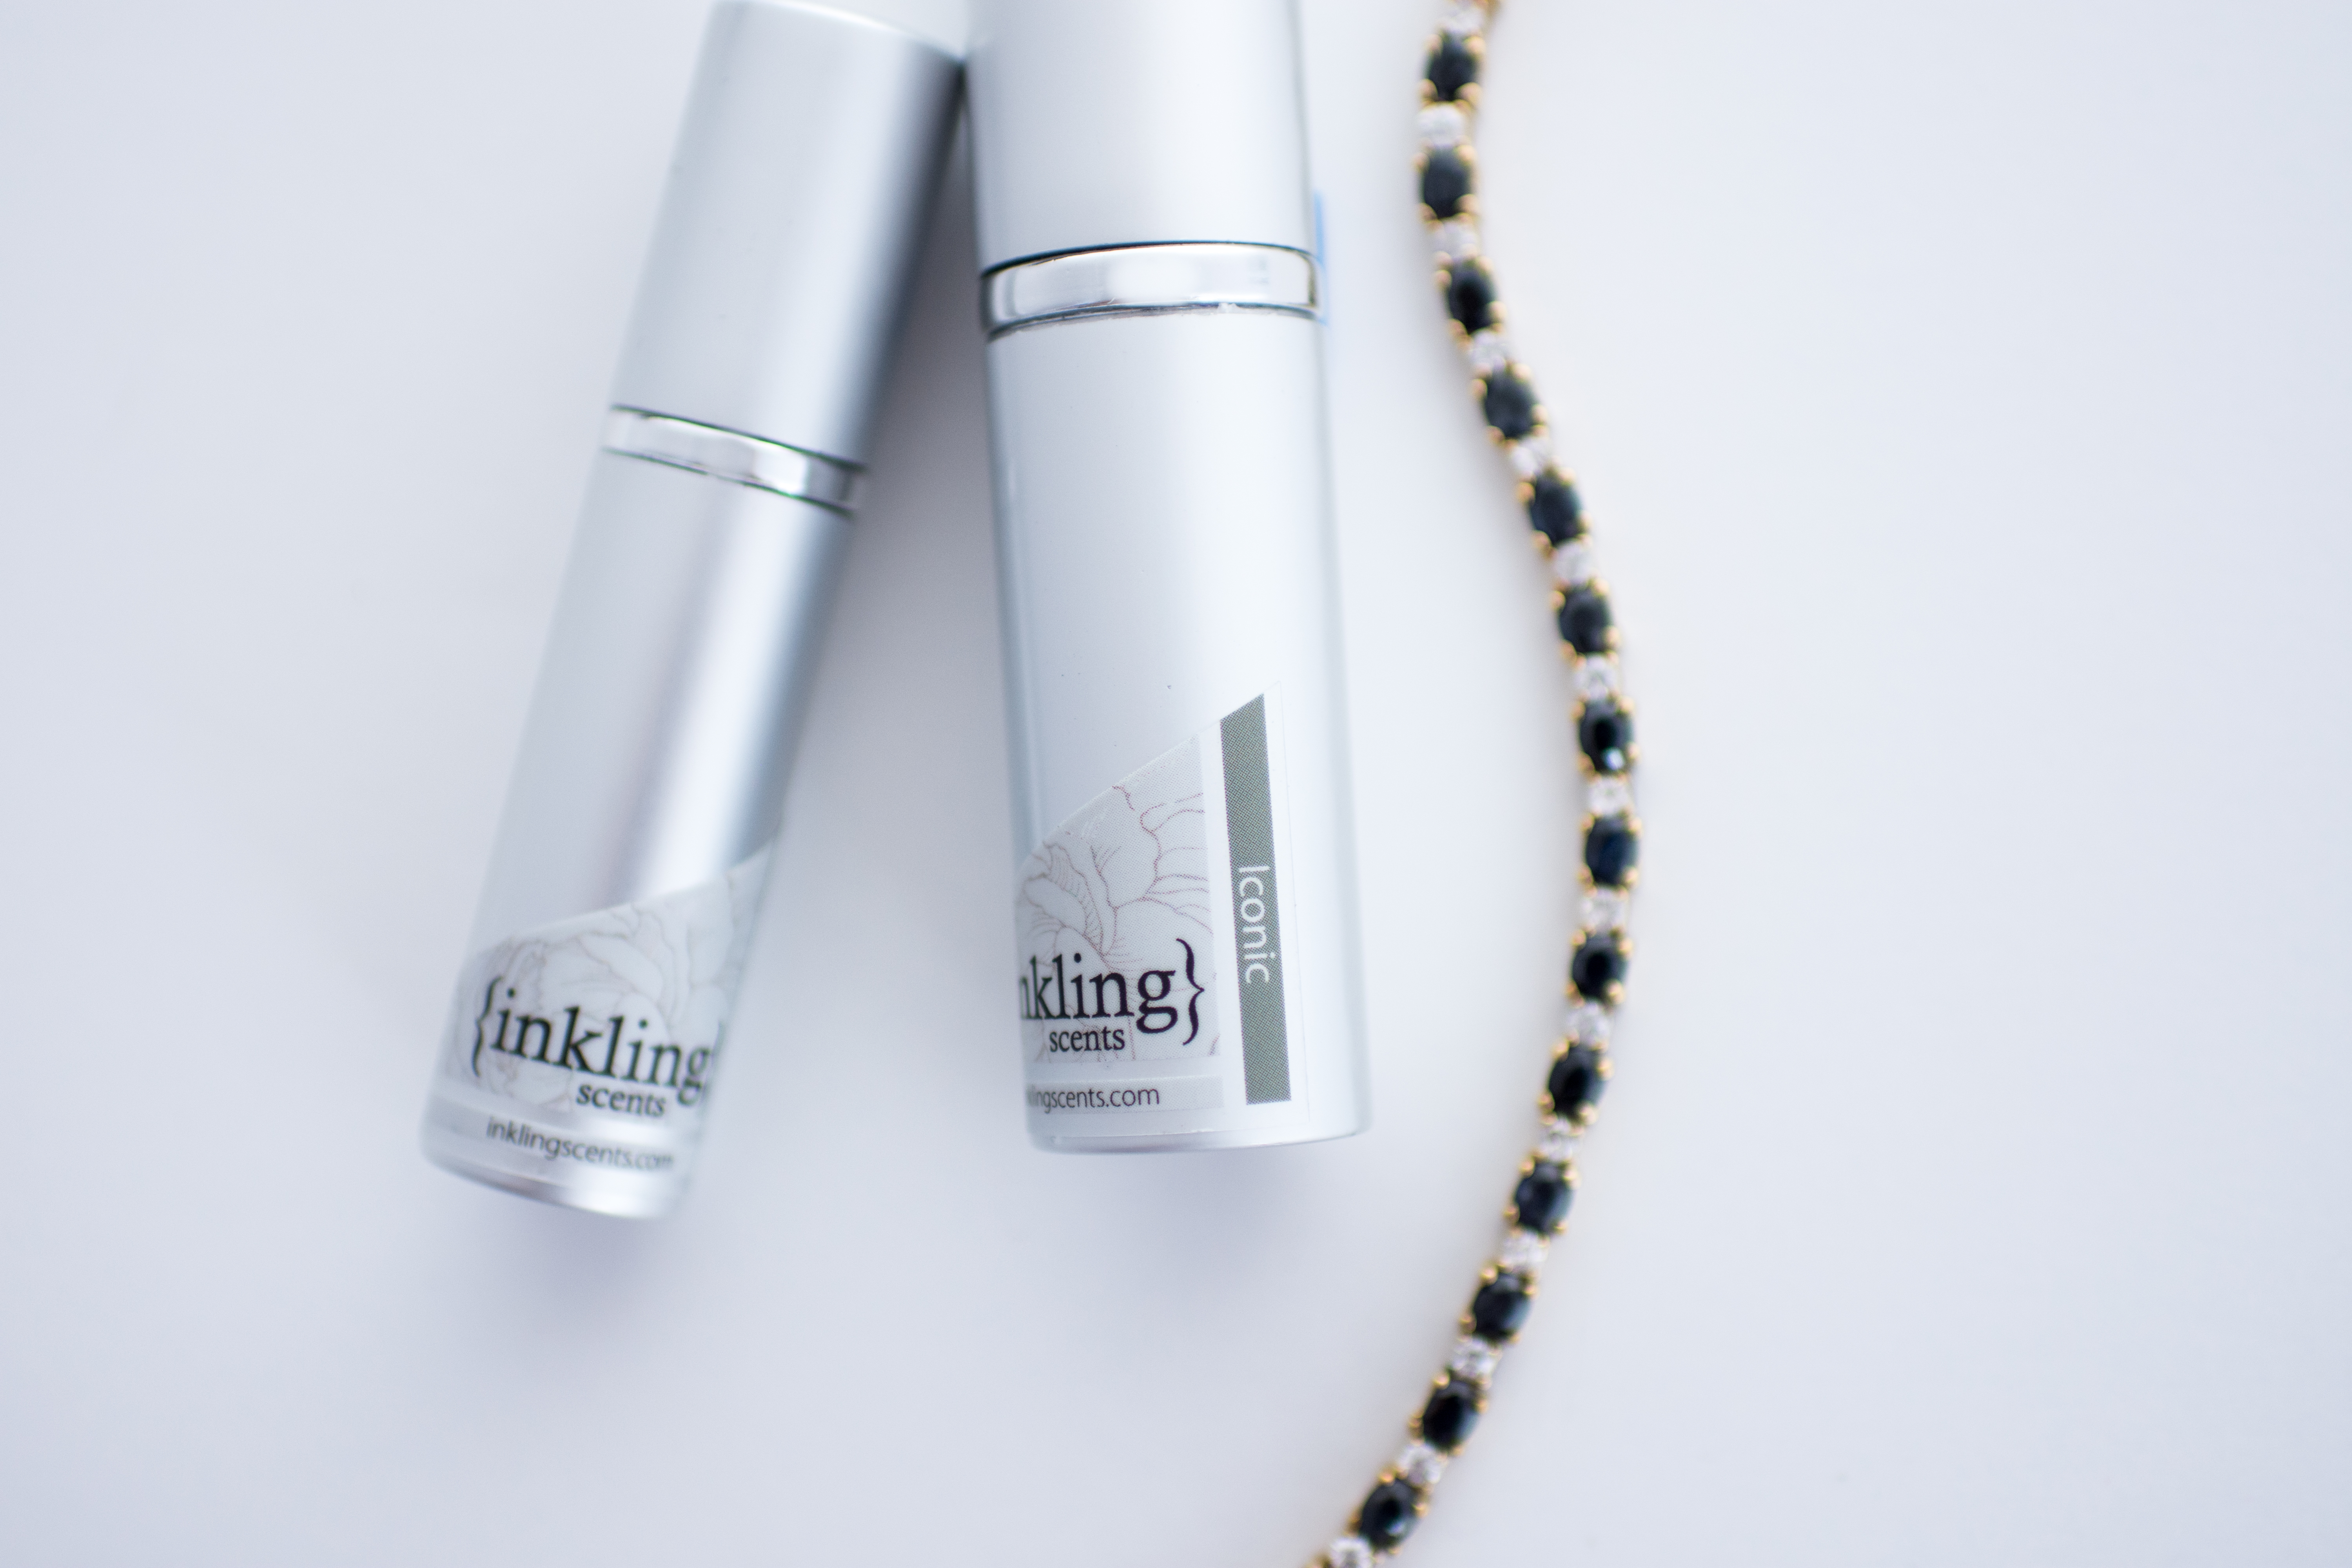 Inkling Scents | Natural Perfumes Without Chemicals